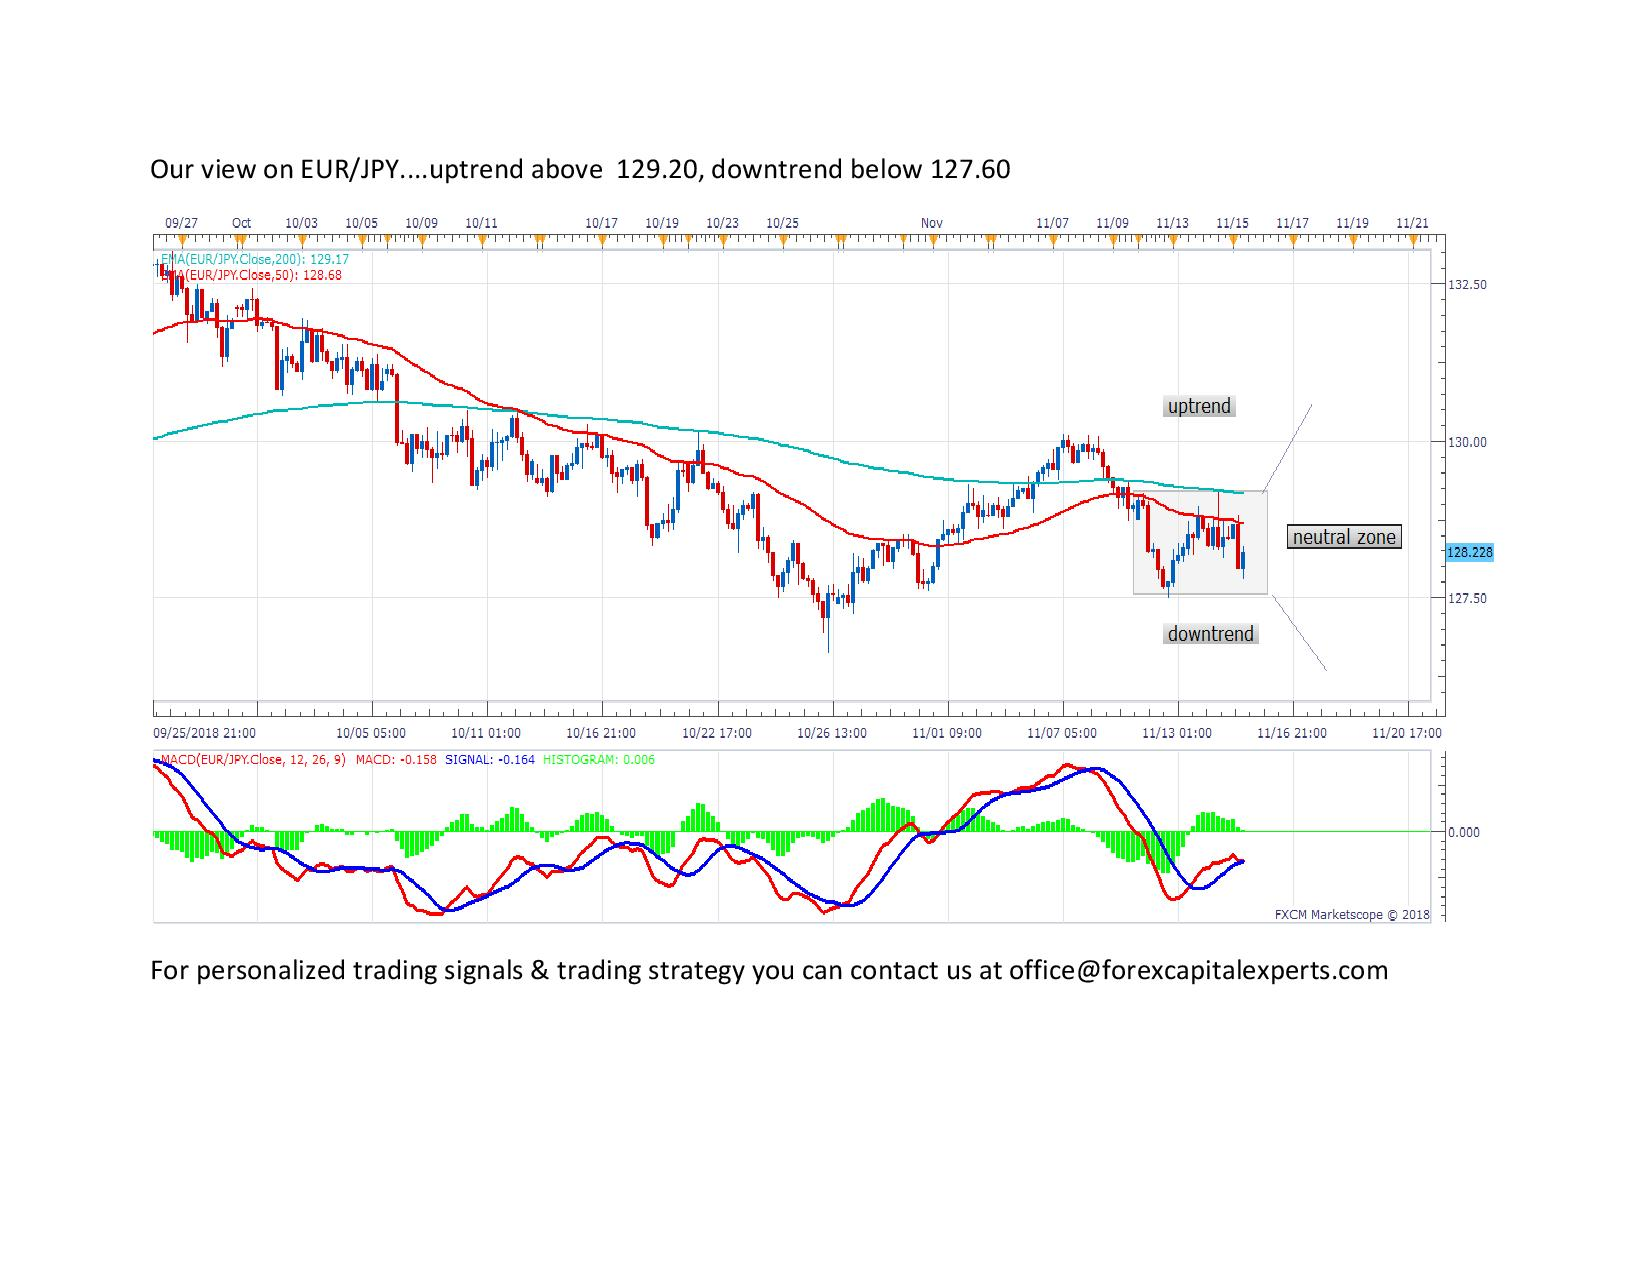 Our view on EURJPY page 0011